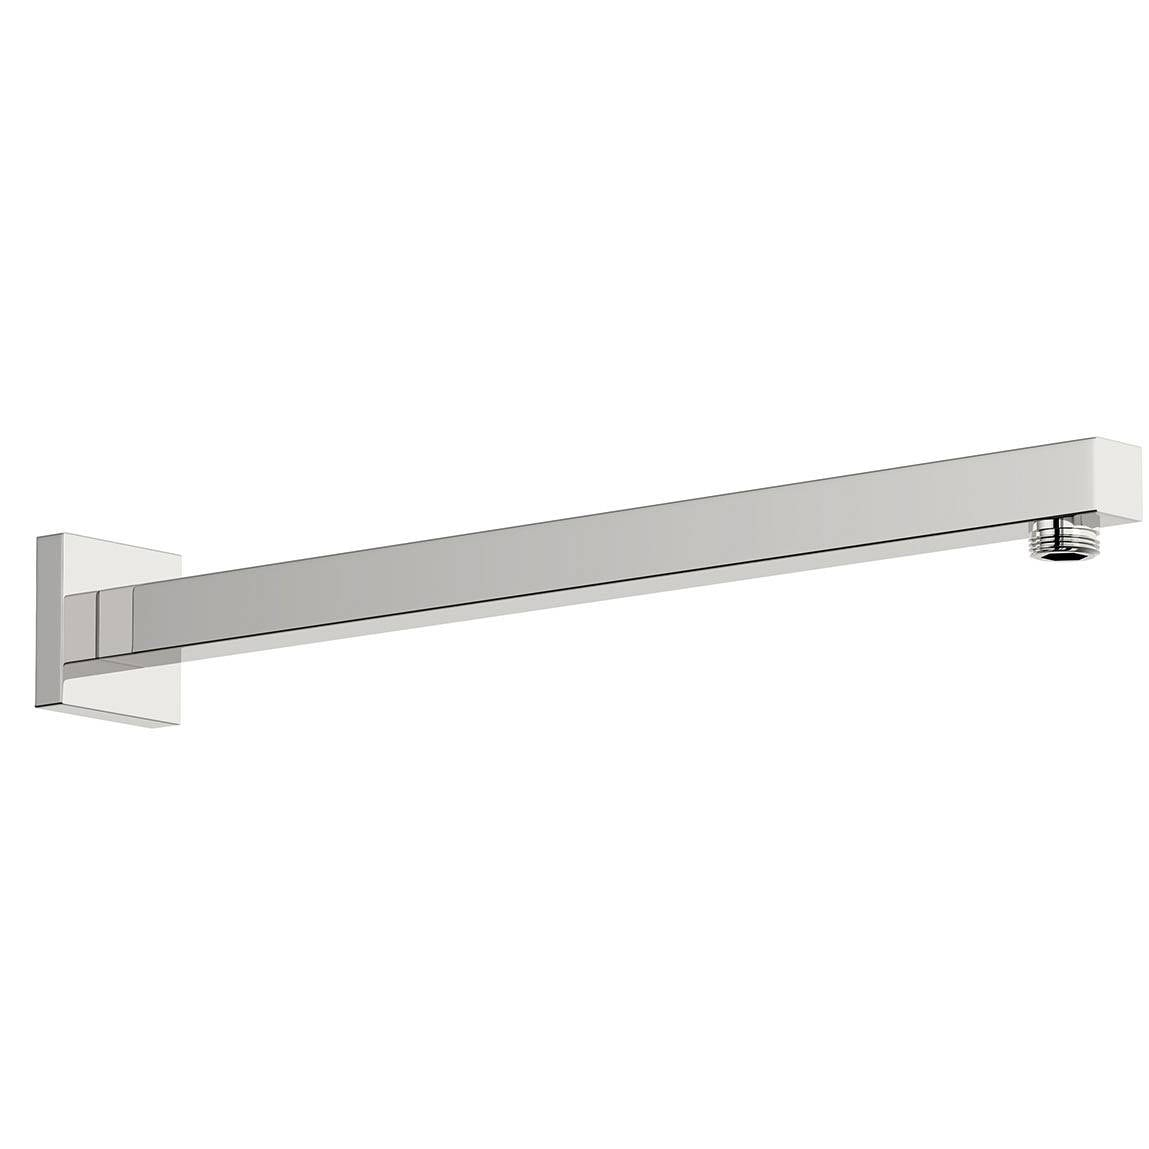 Square wall shower arm 400mm